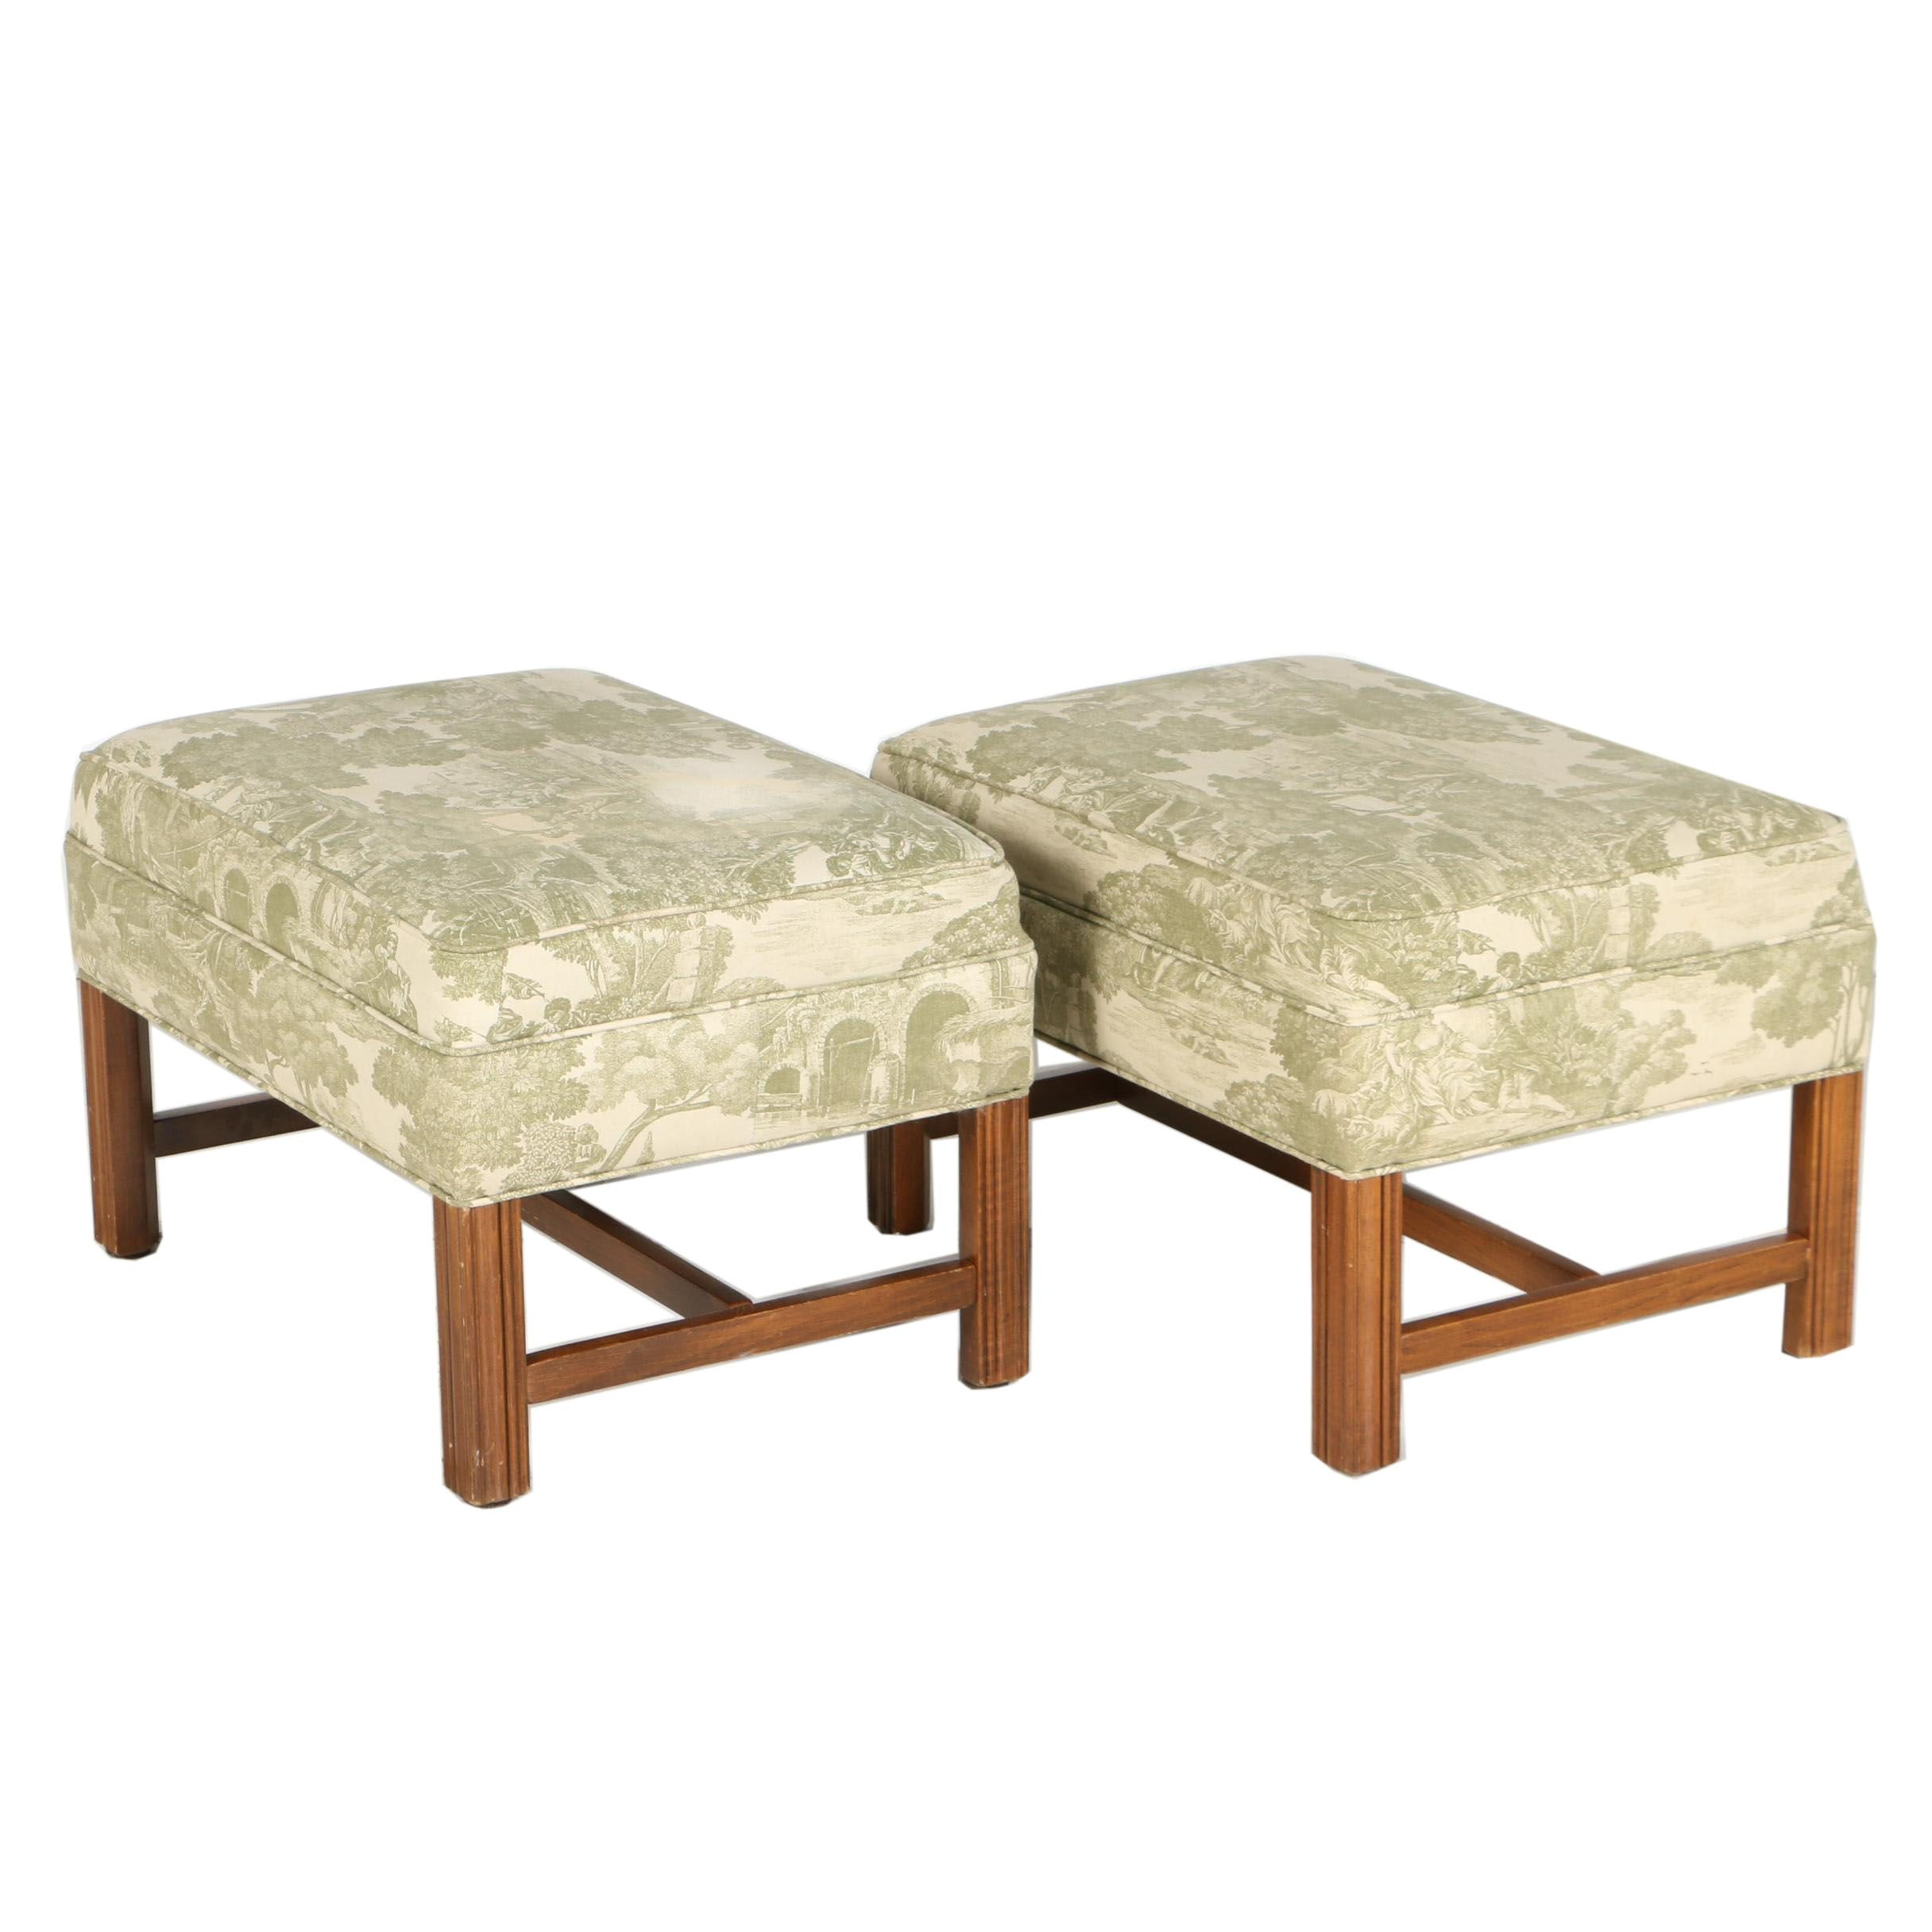 Pair of George III Style Mahogany-Stained Footstools, 20th Century